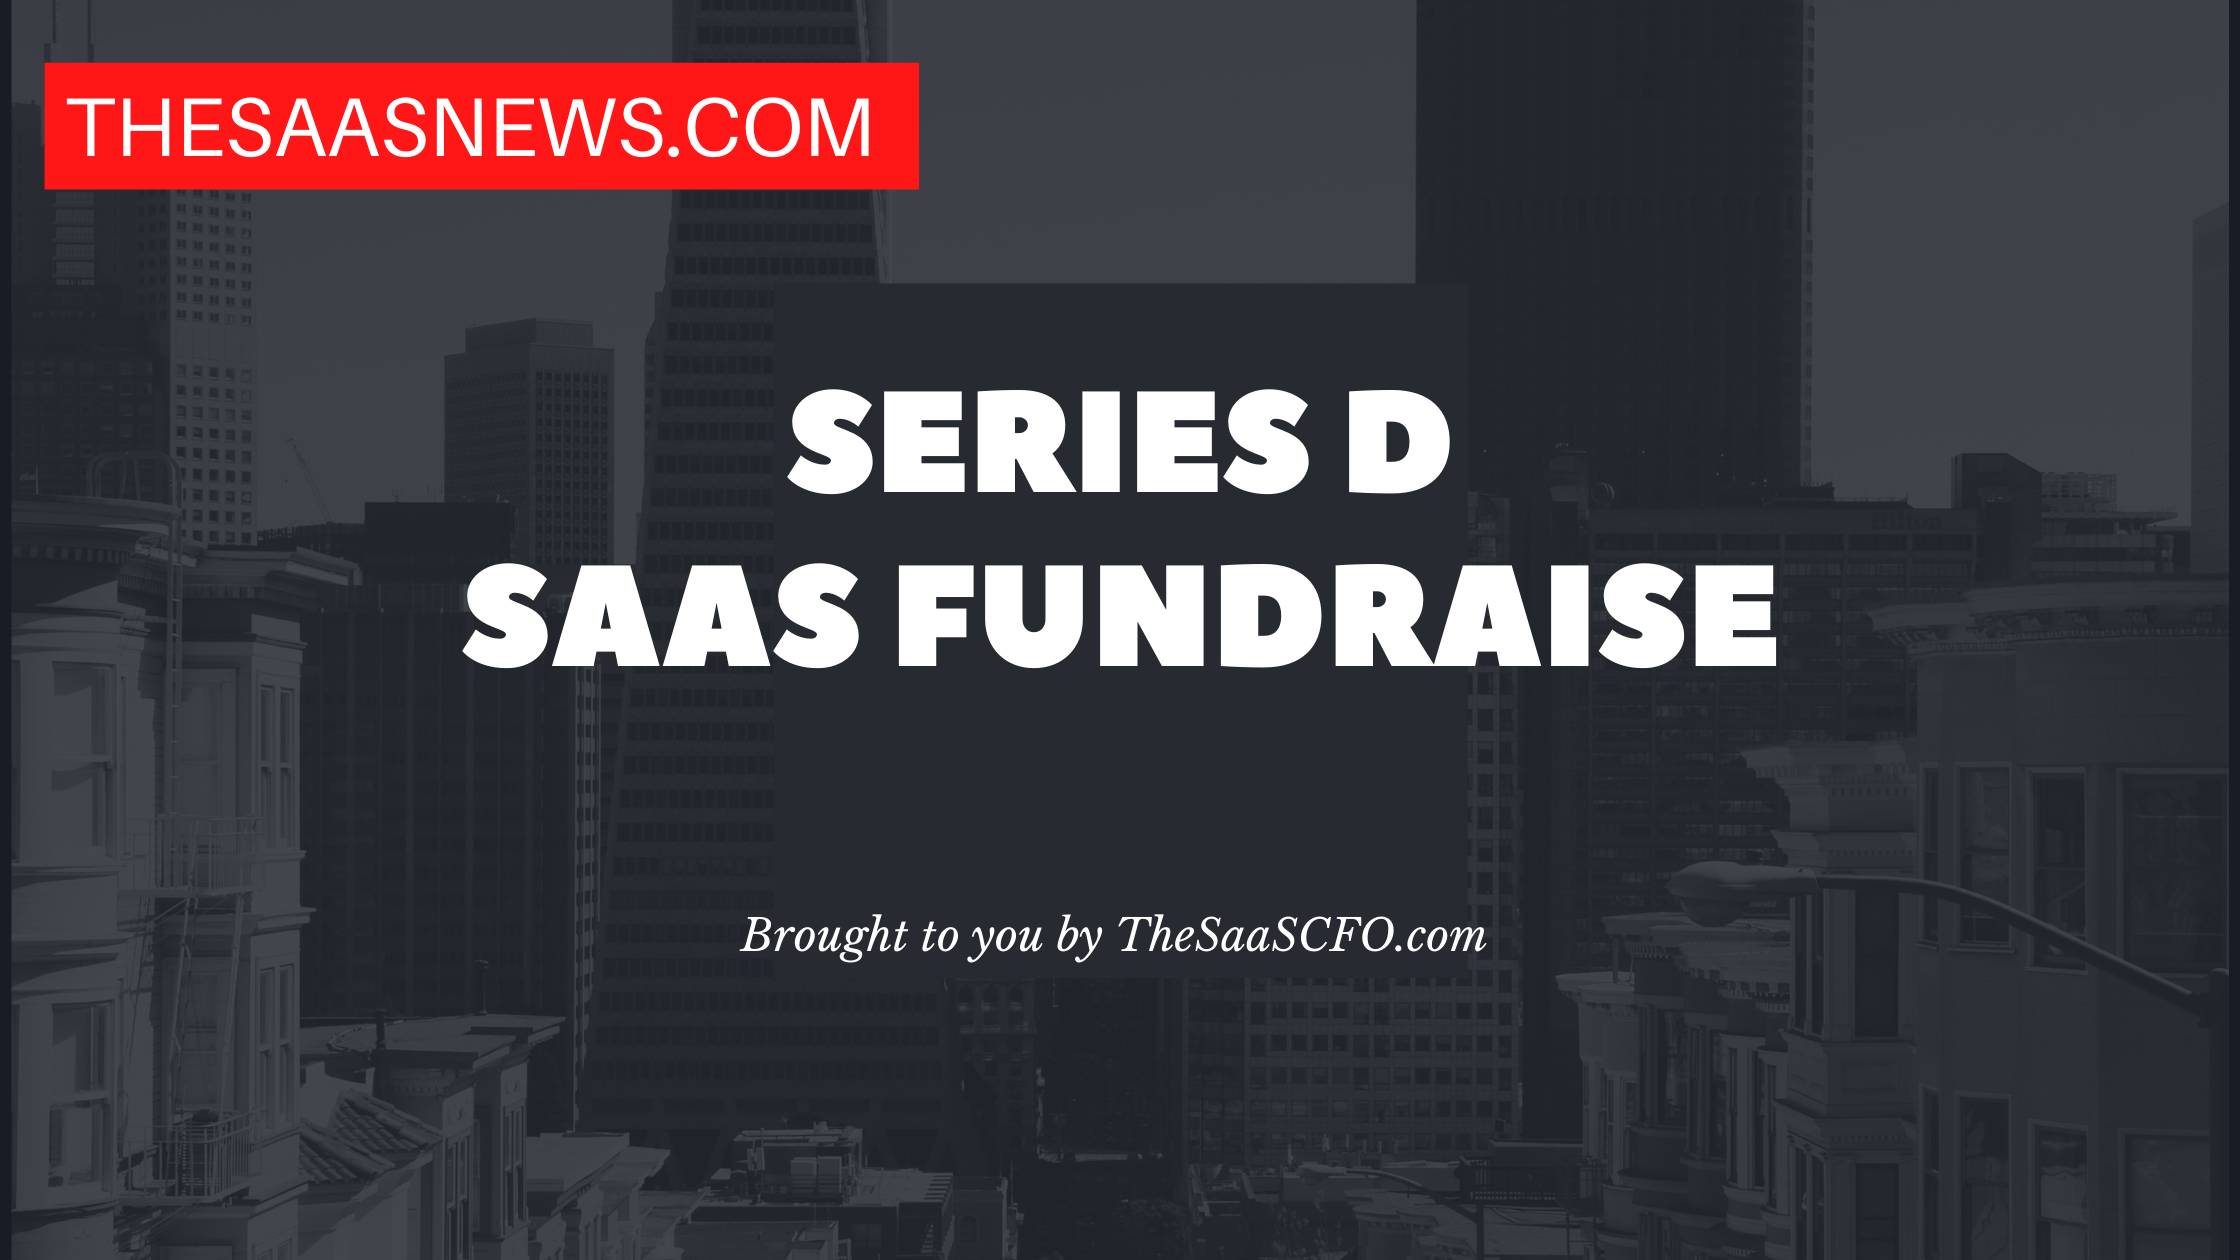 Alida Closes $20 Million in Series D from Round13 Growth Fund